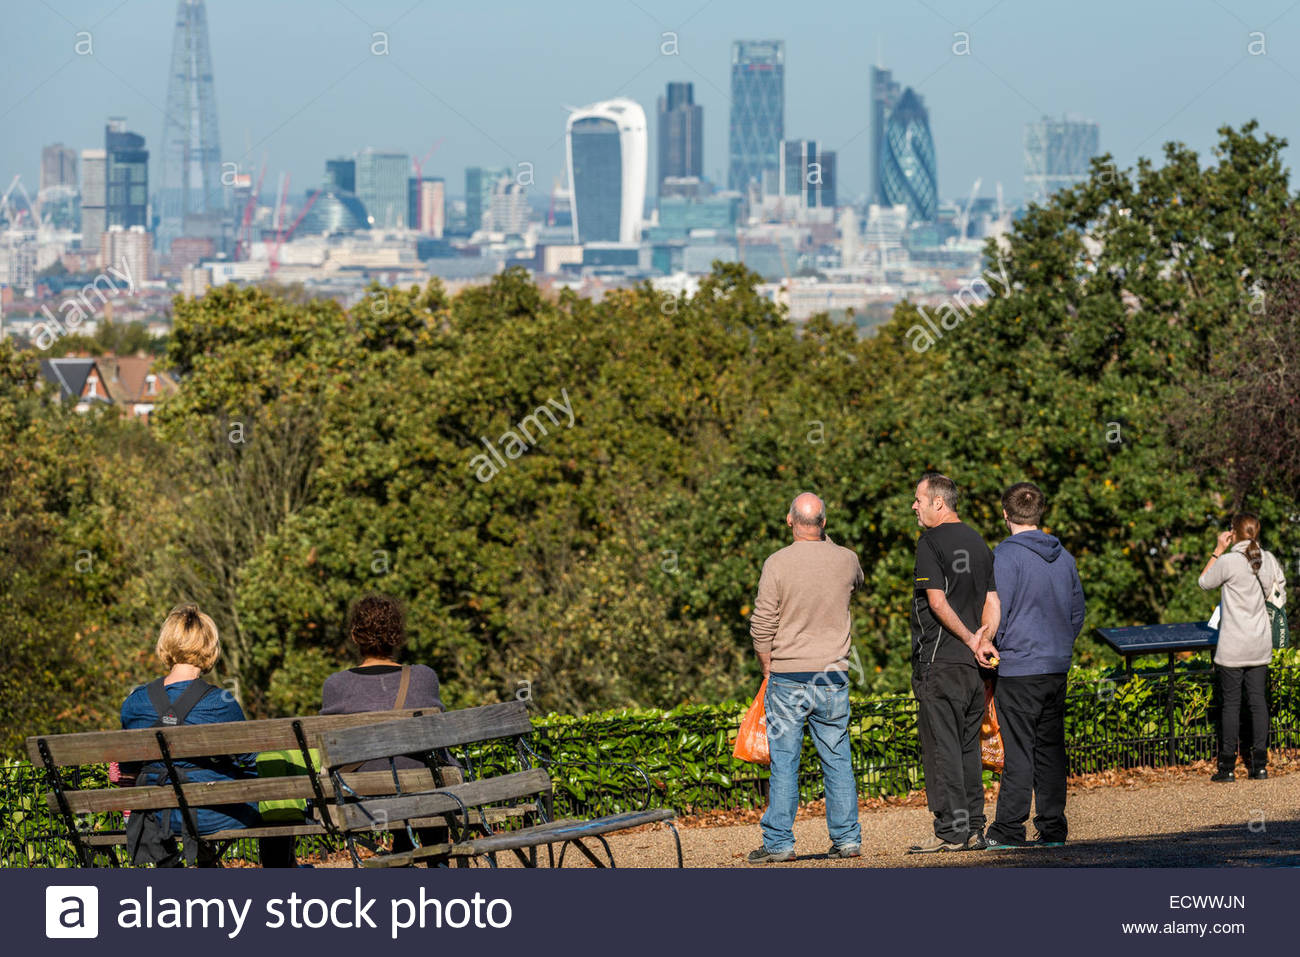 Horniman museum gardens - Stock Photo Visitors To The Horniman Museum Gardens Taking In Views Of The Financial District Of London Known As The City Or Square Mile